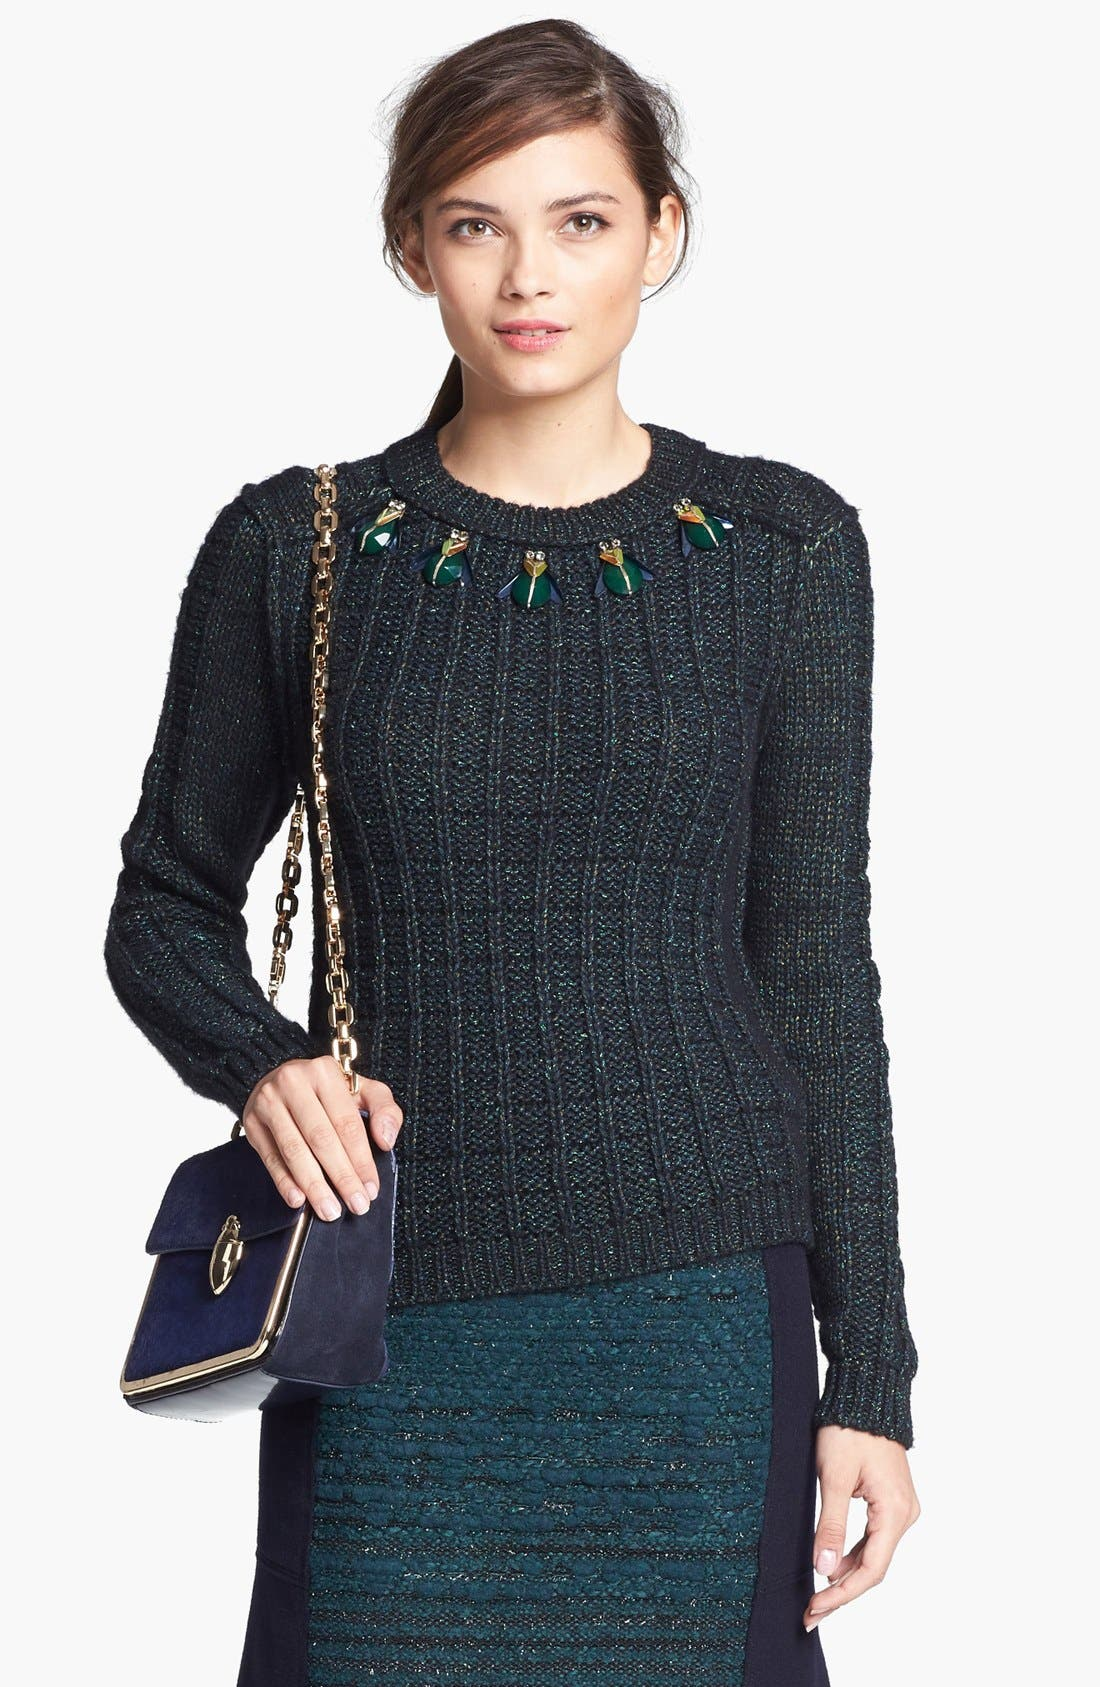 Main Image - Tory Burch 'Lucy' Embellished Sweater